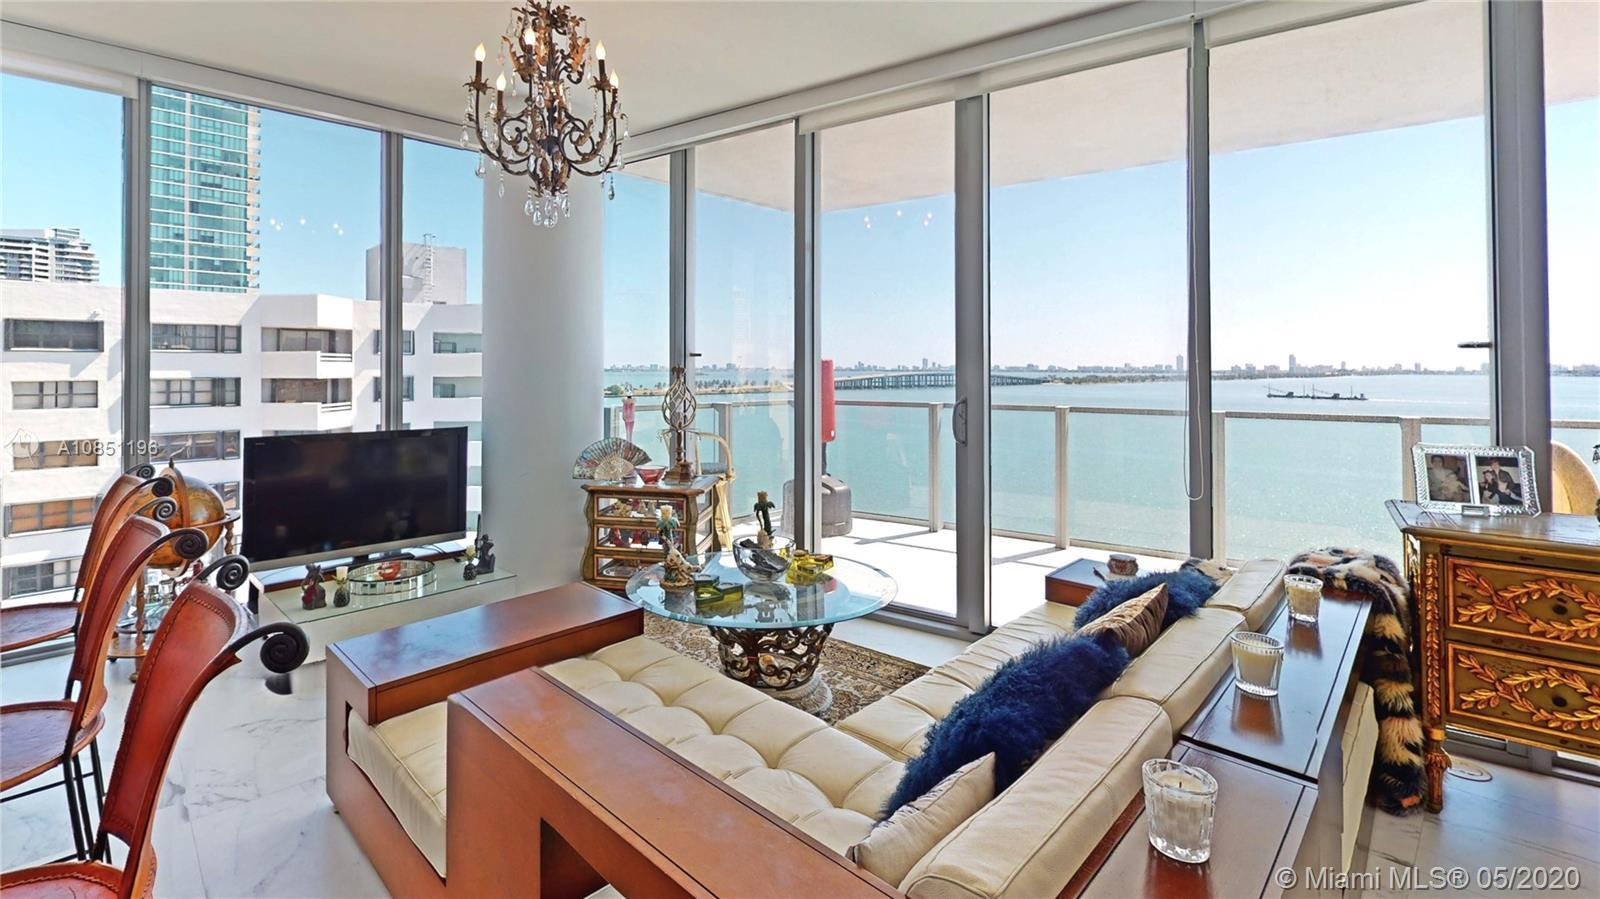 Wake up to panoramic stunning water views, located in the prestigious Biscayne Beach building in Edg